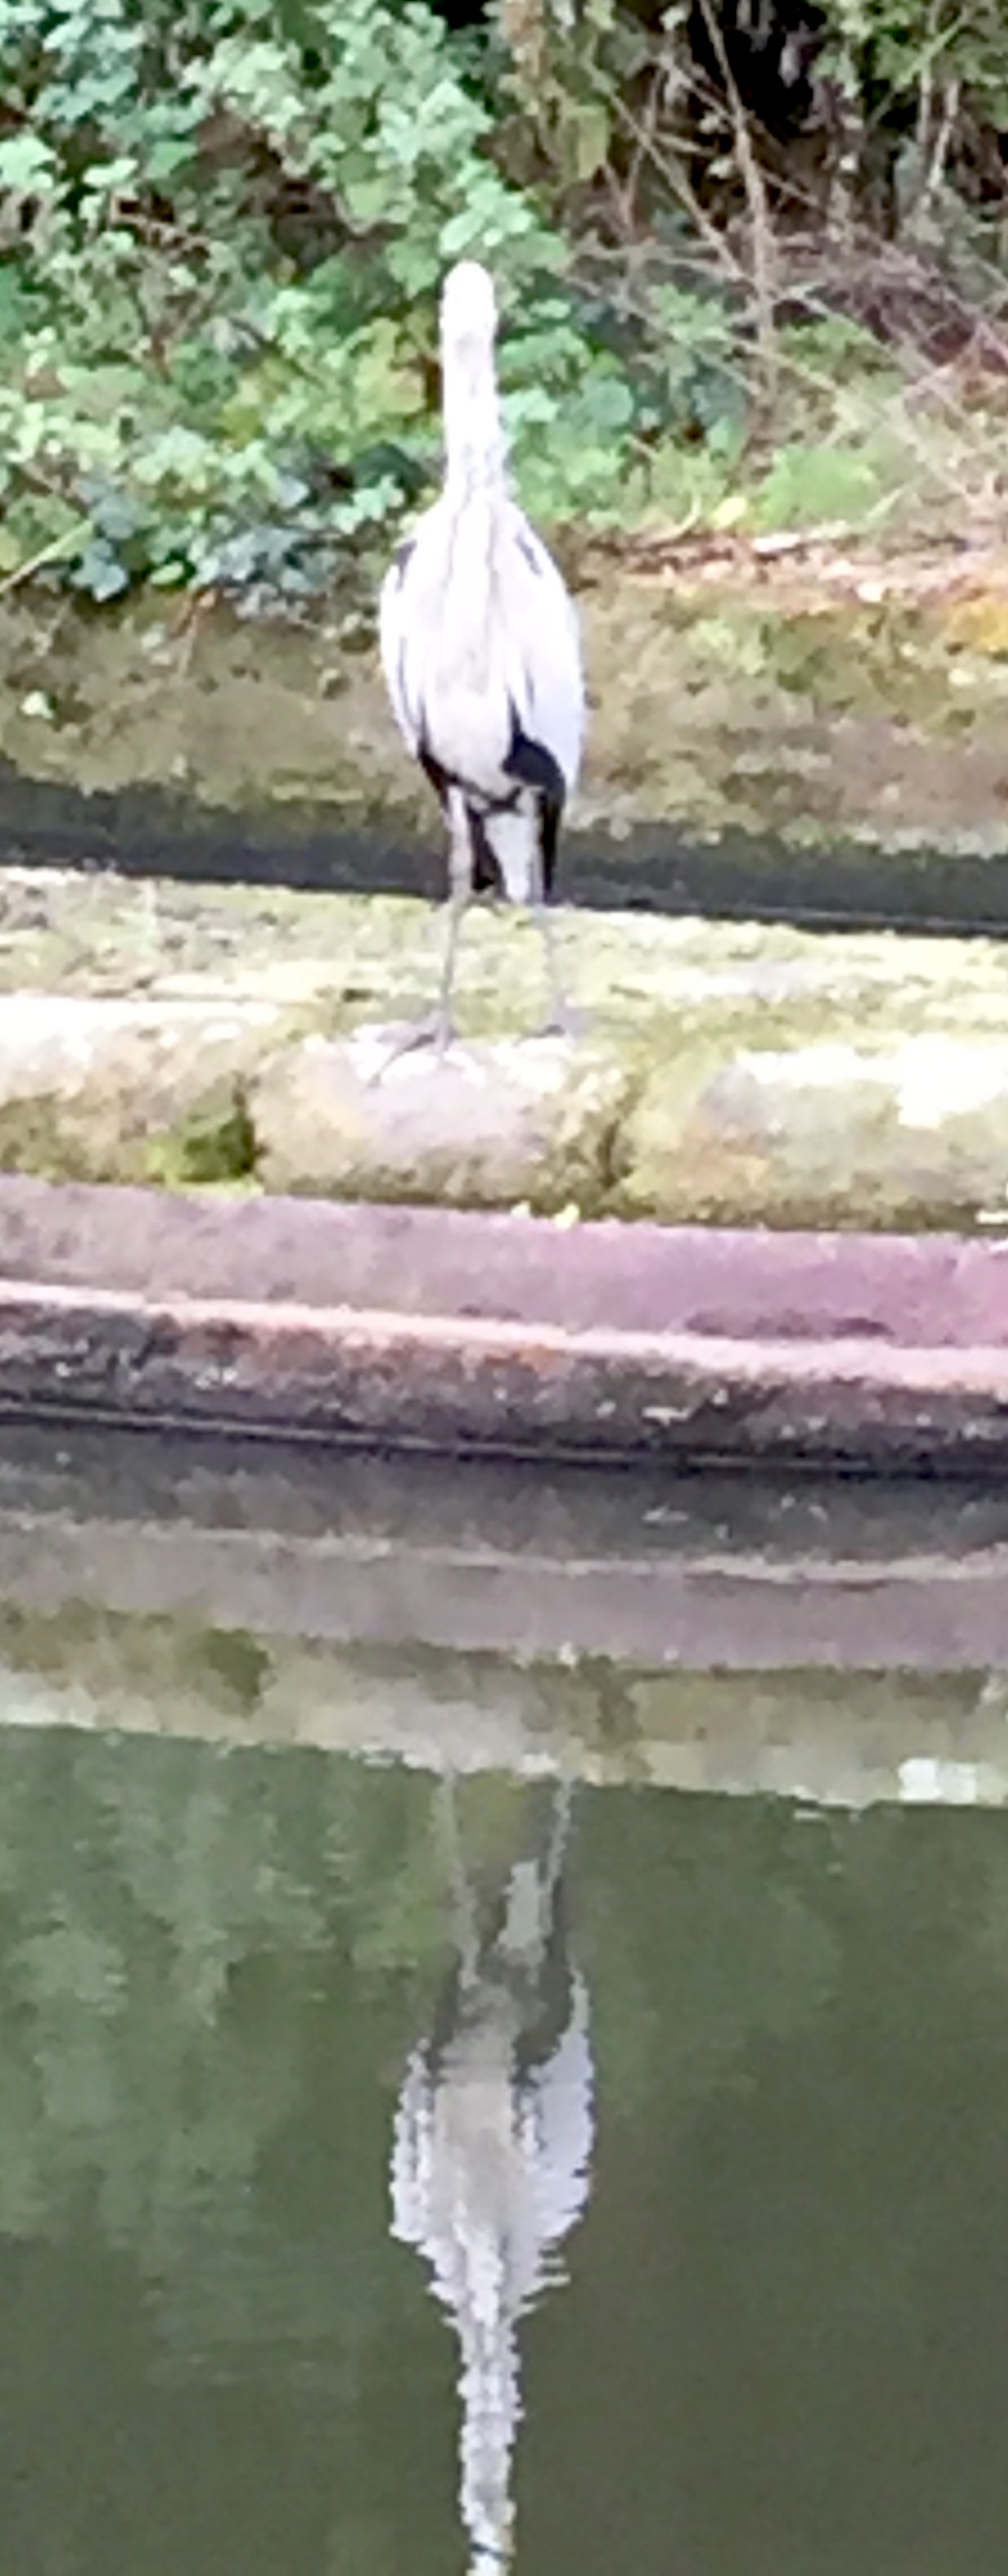 A heron fishing on the Birmingham main line canal